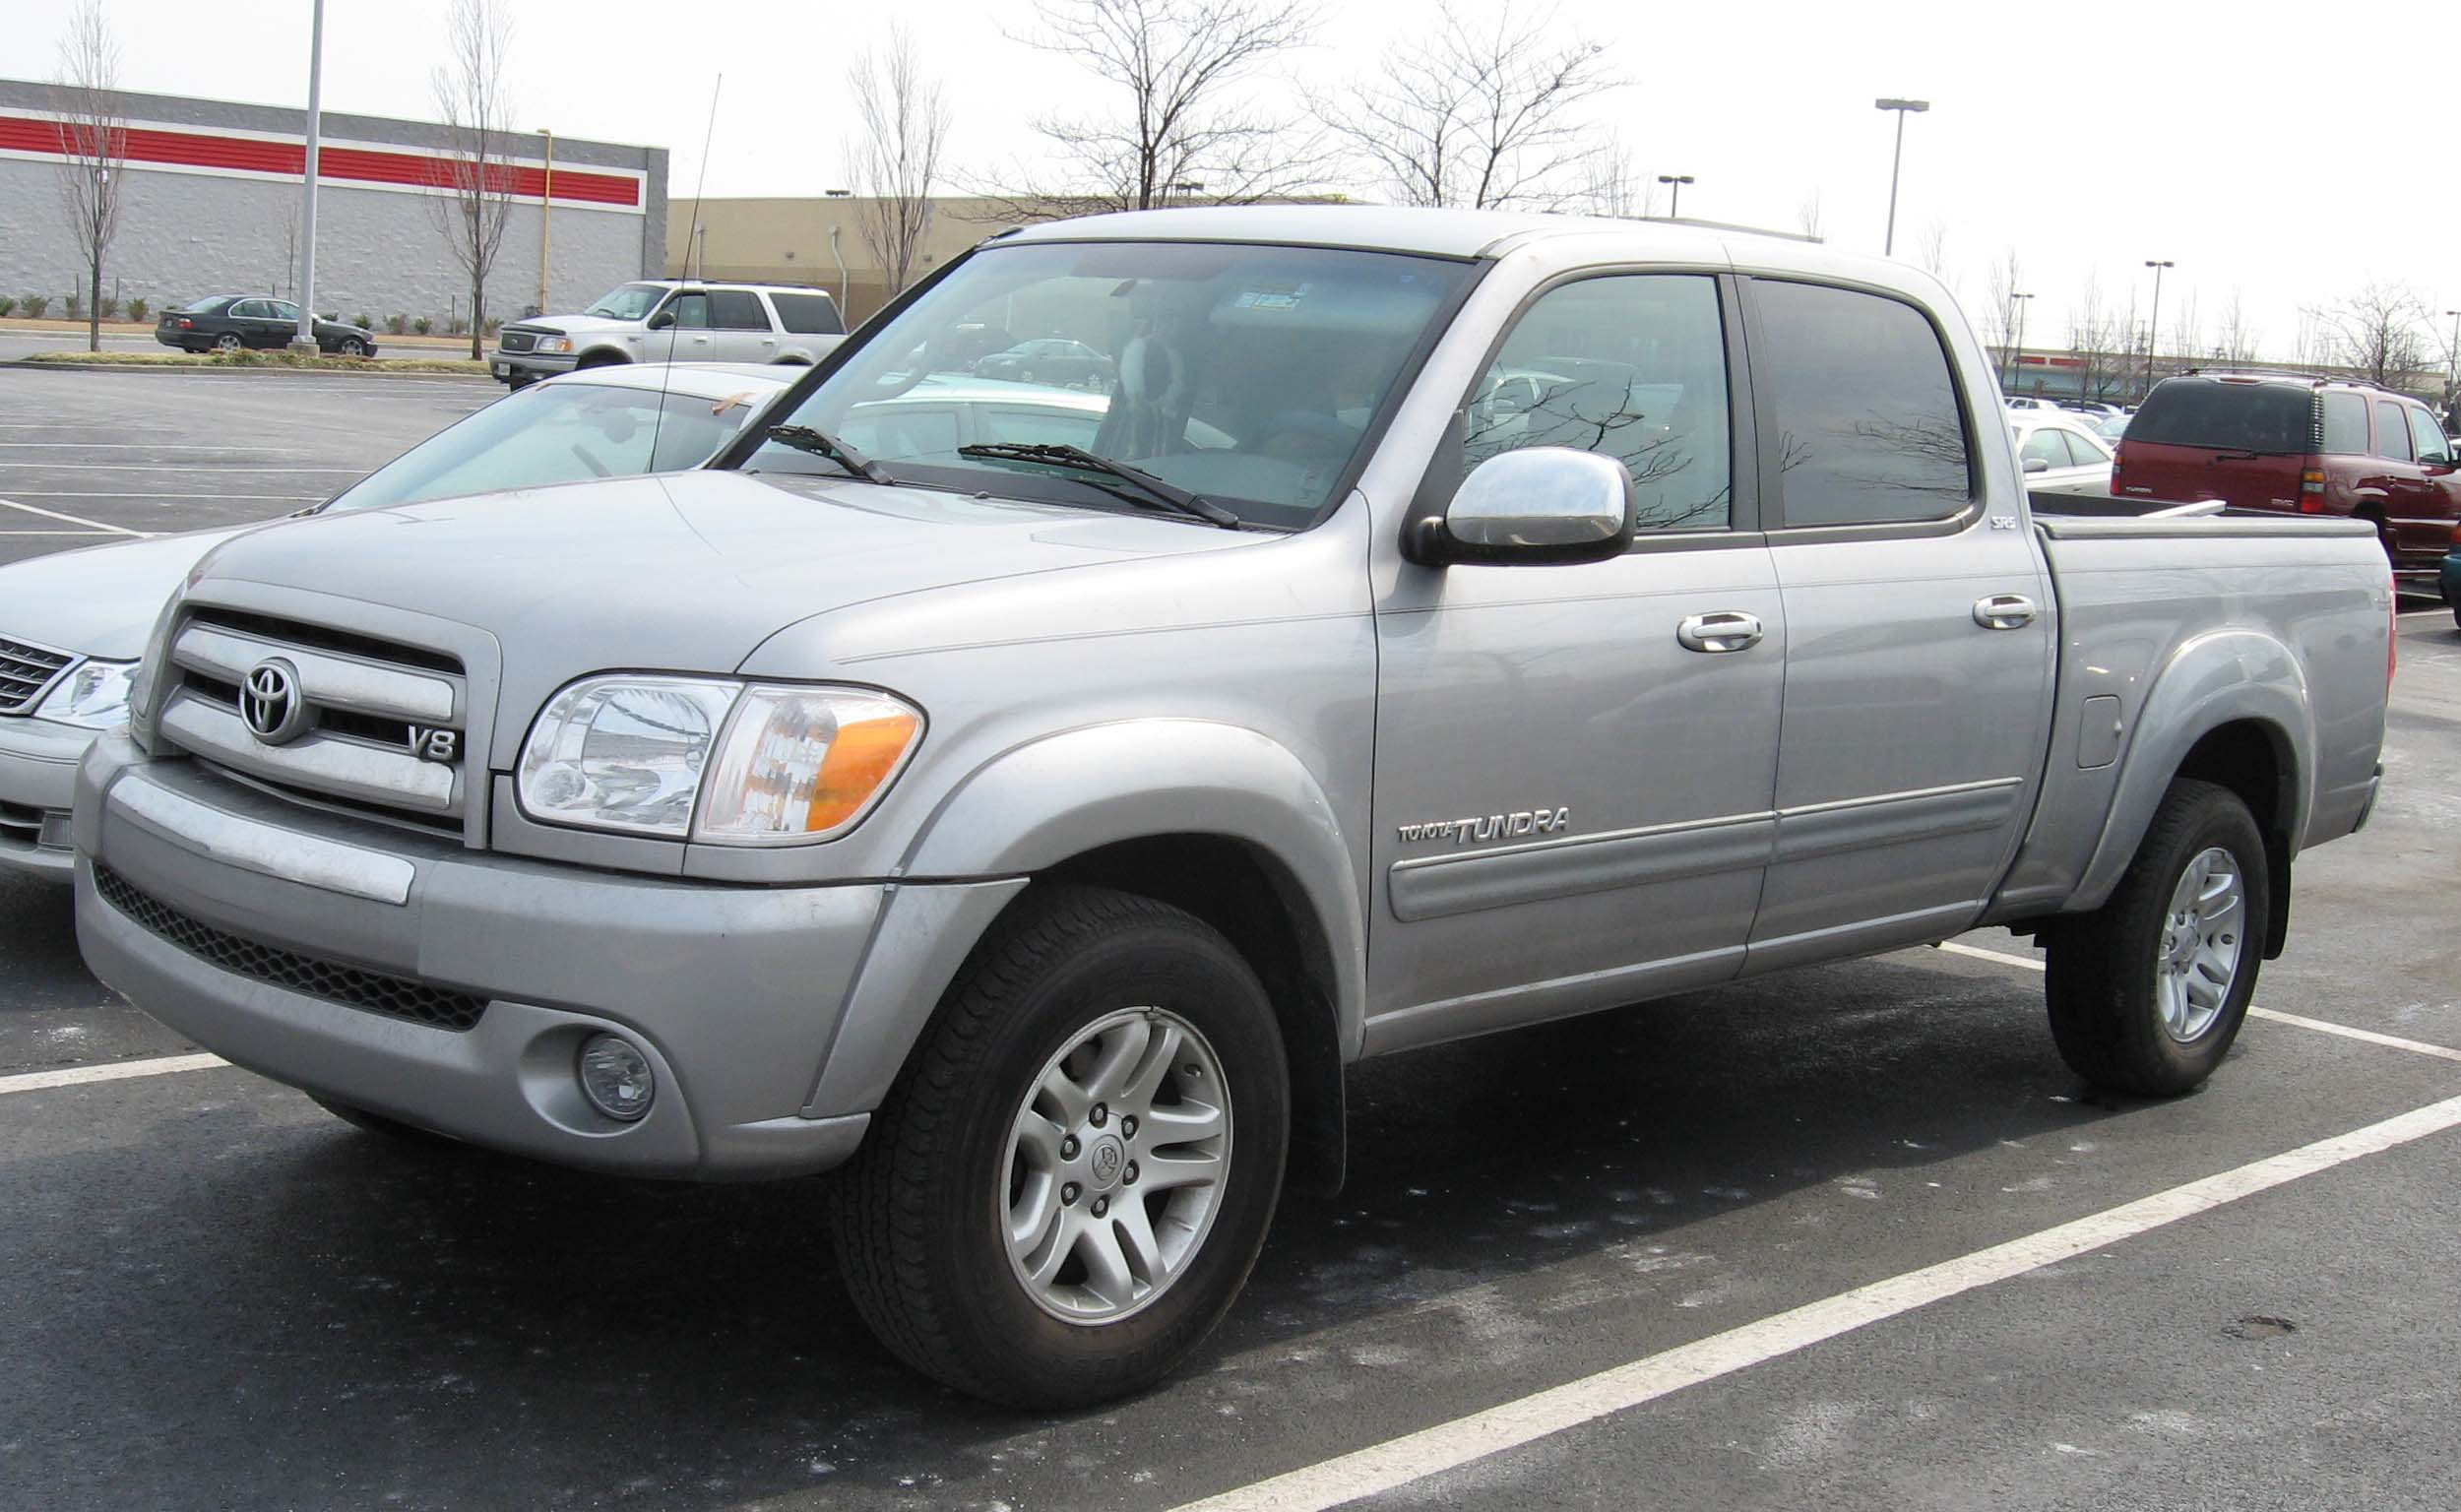 Toyota Tundra 2007 photo - 2